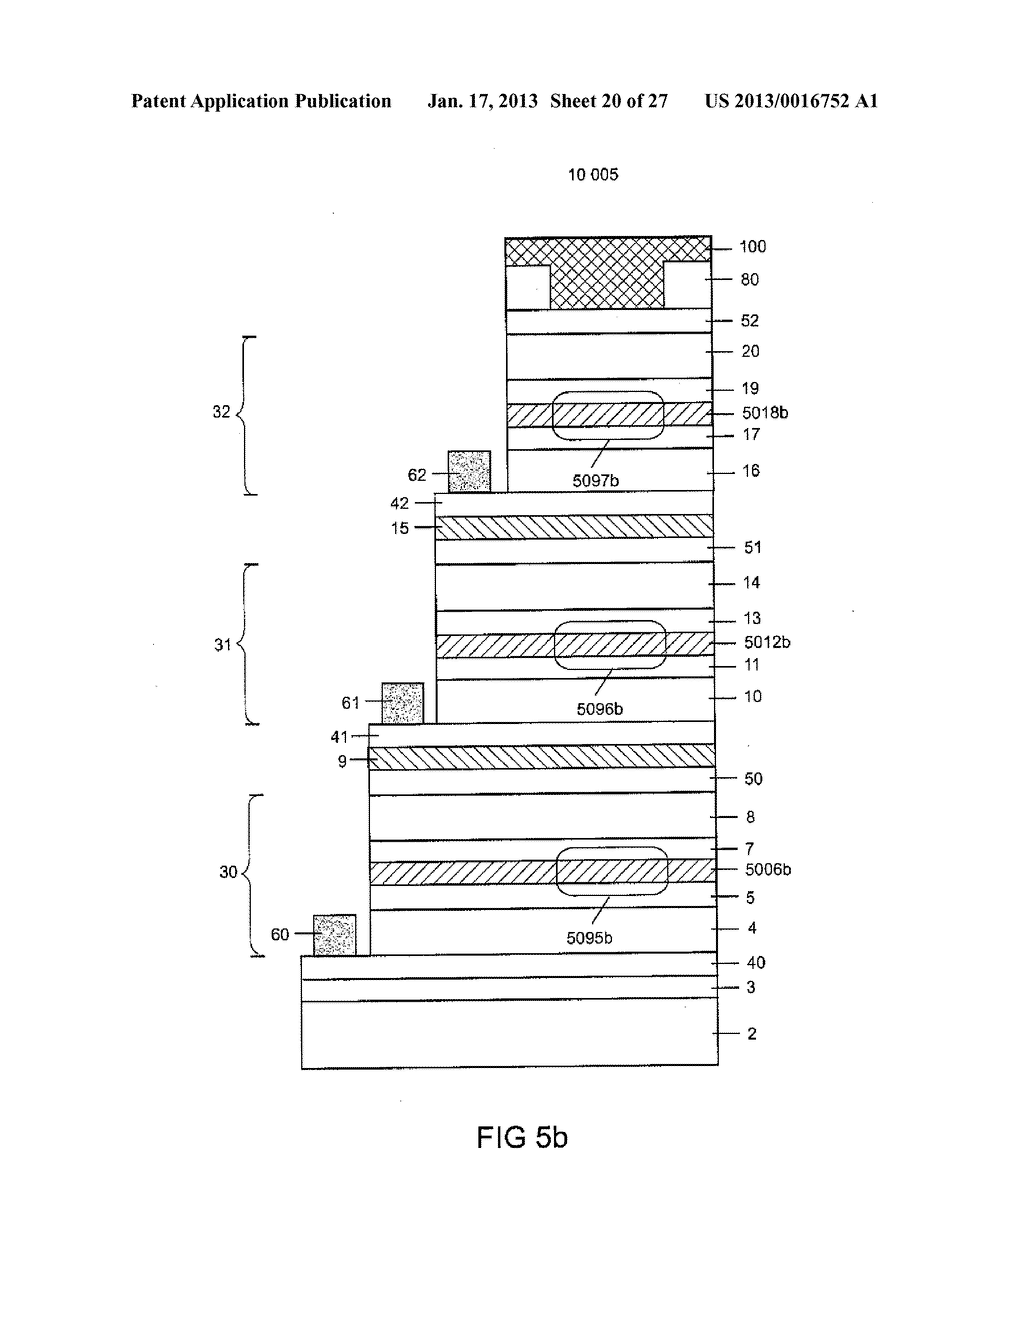 Laser Diode Assembly and Method for Producing a Laser Diode AssemblyAANM Lell; AlfredAACI Maxhutte-HaidhofAACO DEAAGP Lell; Alfred Maxhutte-Haidhof DEAANM Straussburg; MartinAACI DonaustaufAACO DEAAGP Straussburg; Martin Donaustauf DE - diagram, schematic, and image 21